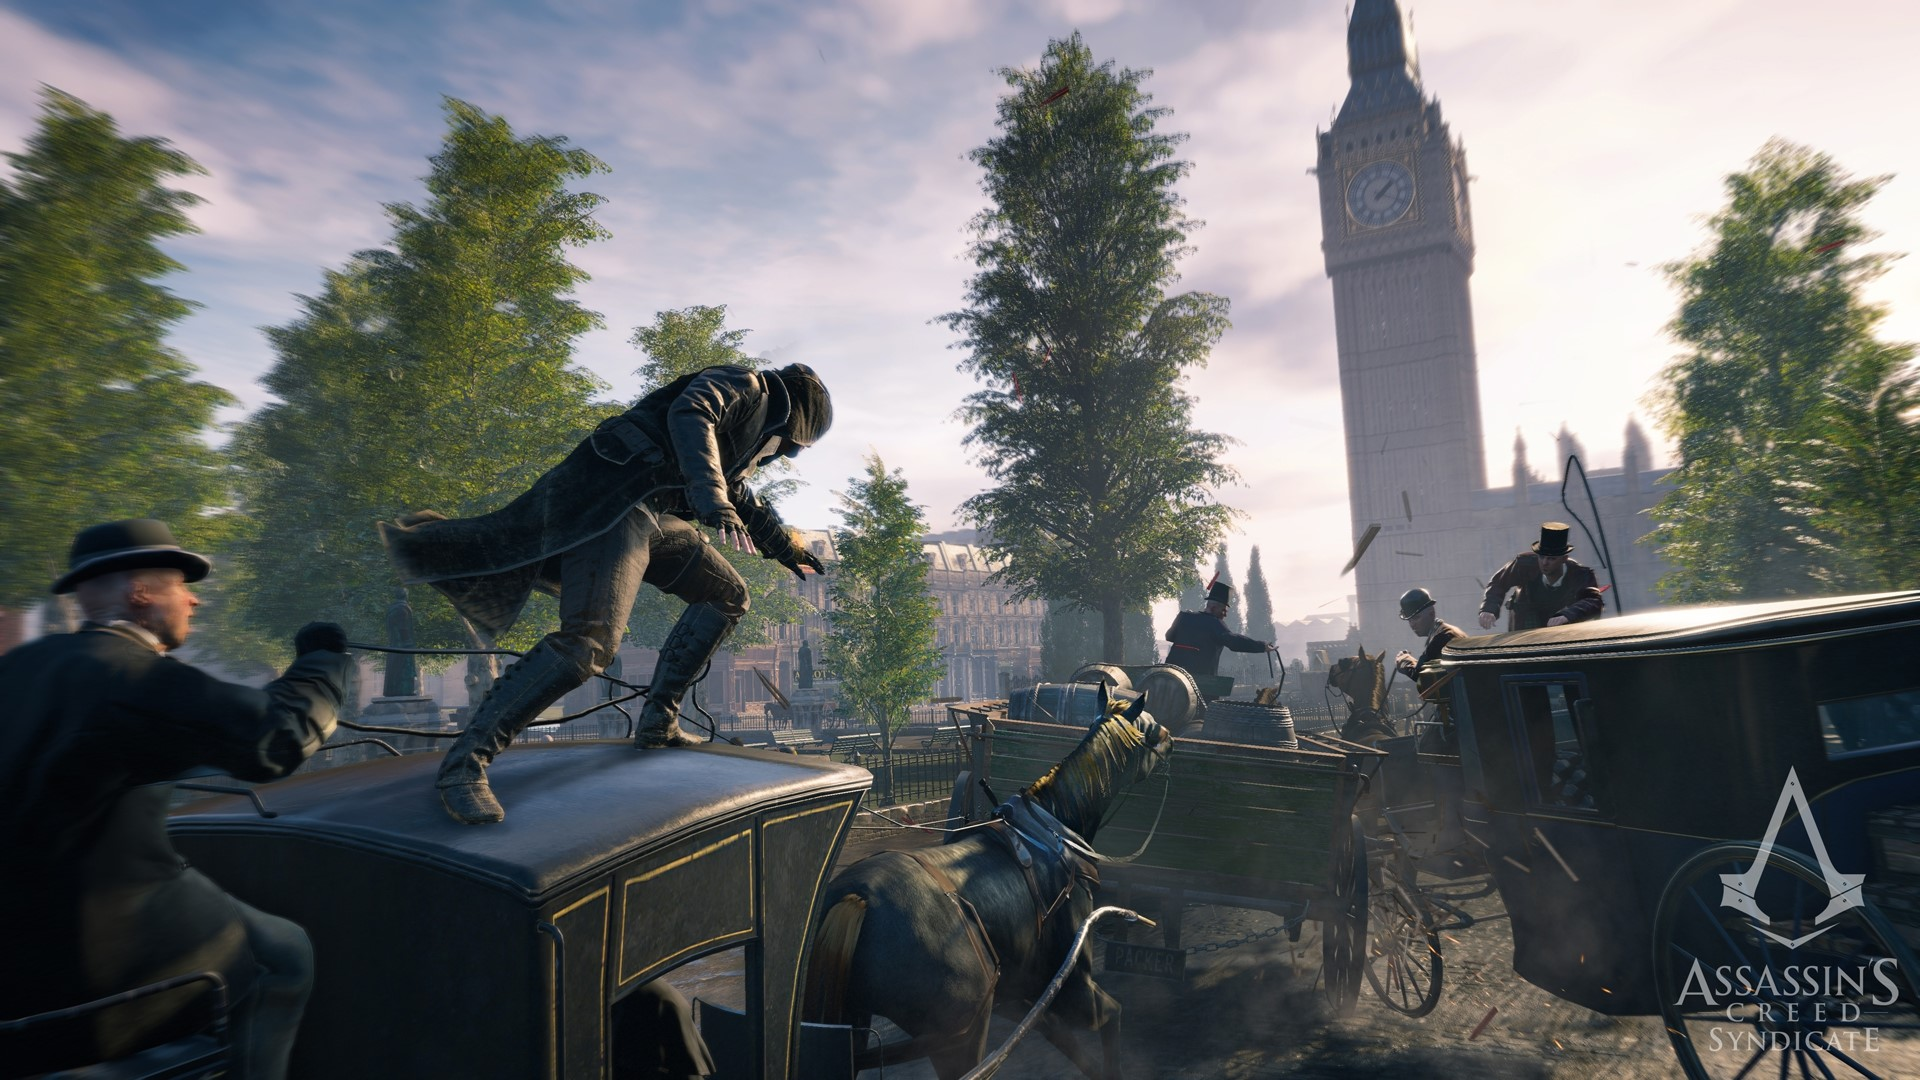 Assassins Creed Syndicate (Uplay key) -- RU